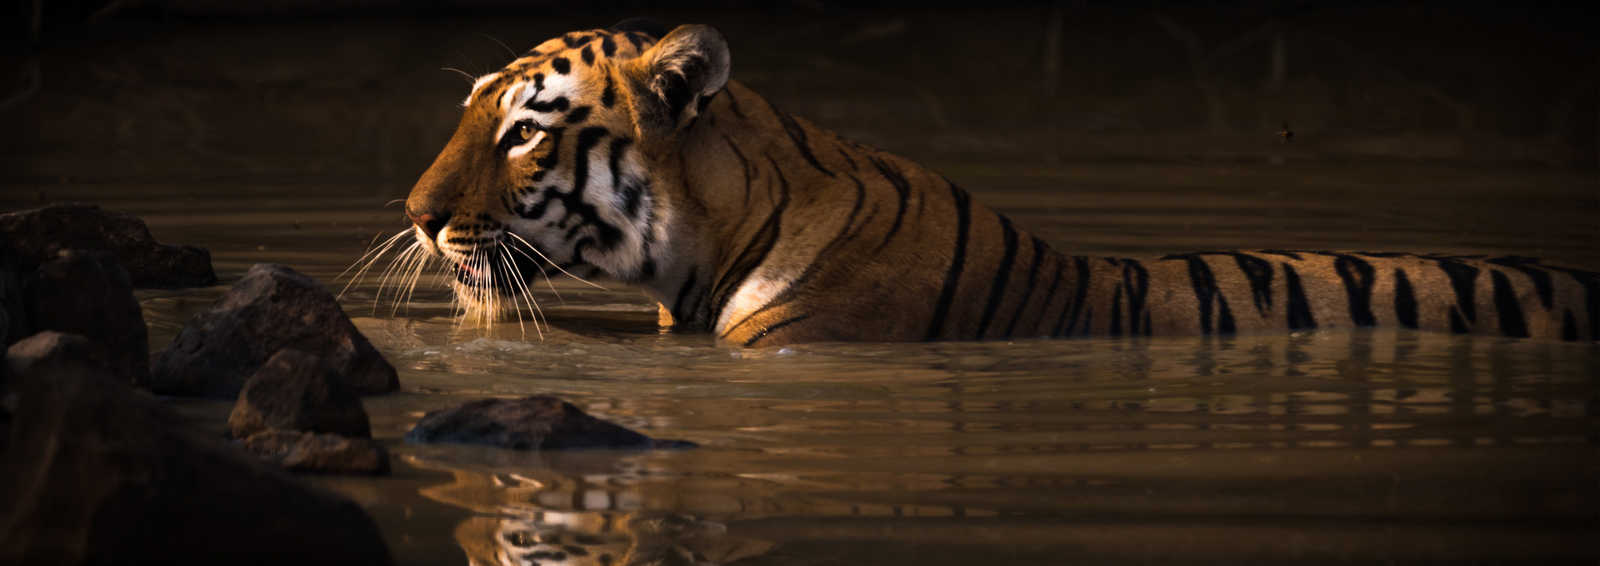 Bengal tiger with catchlight in water hole - Copyright Paul Goldstein